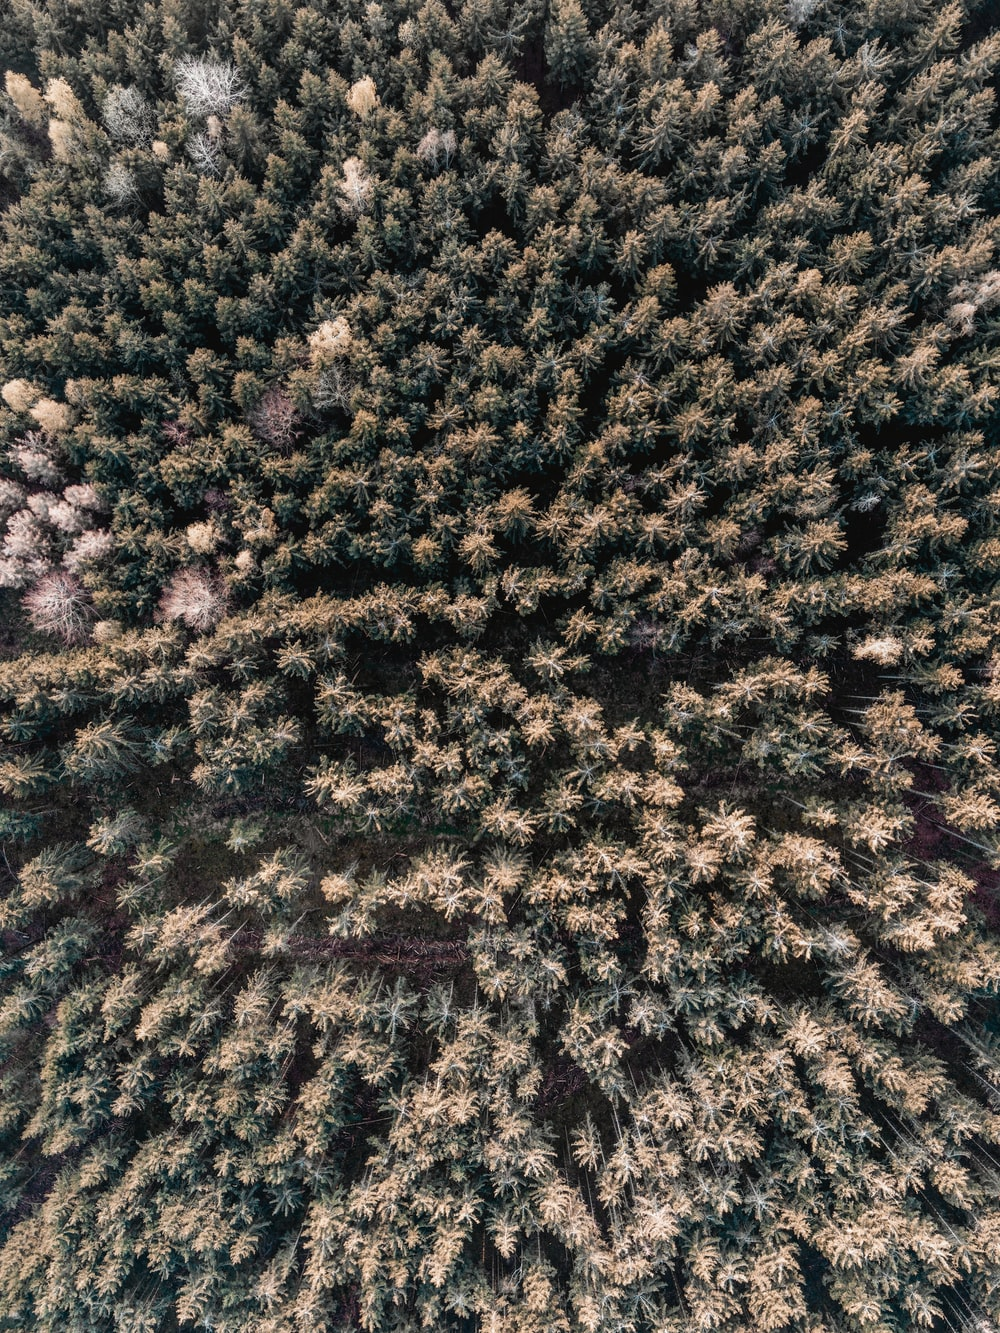 aerial view of forest during daytime